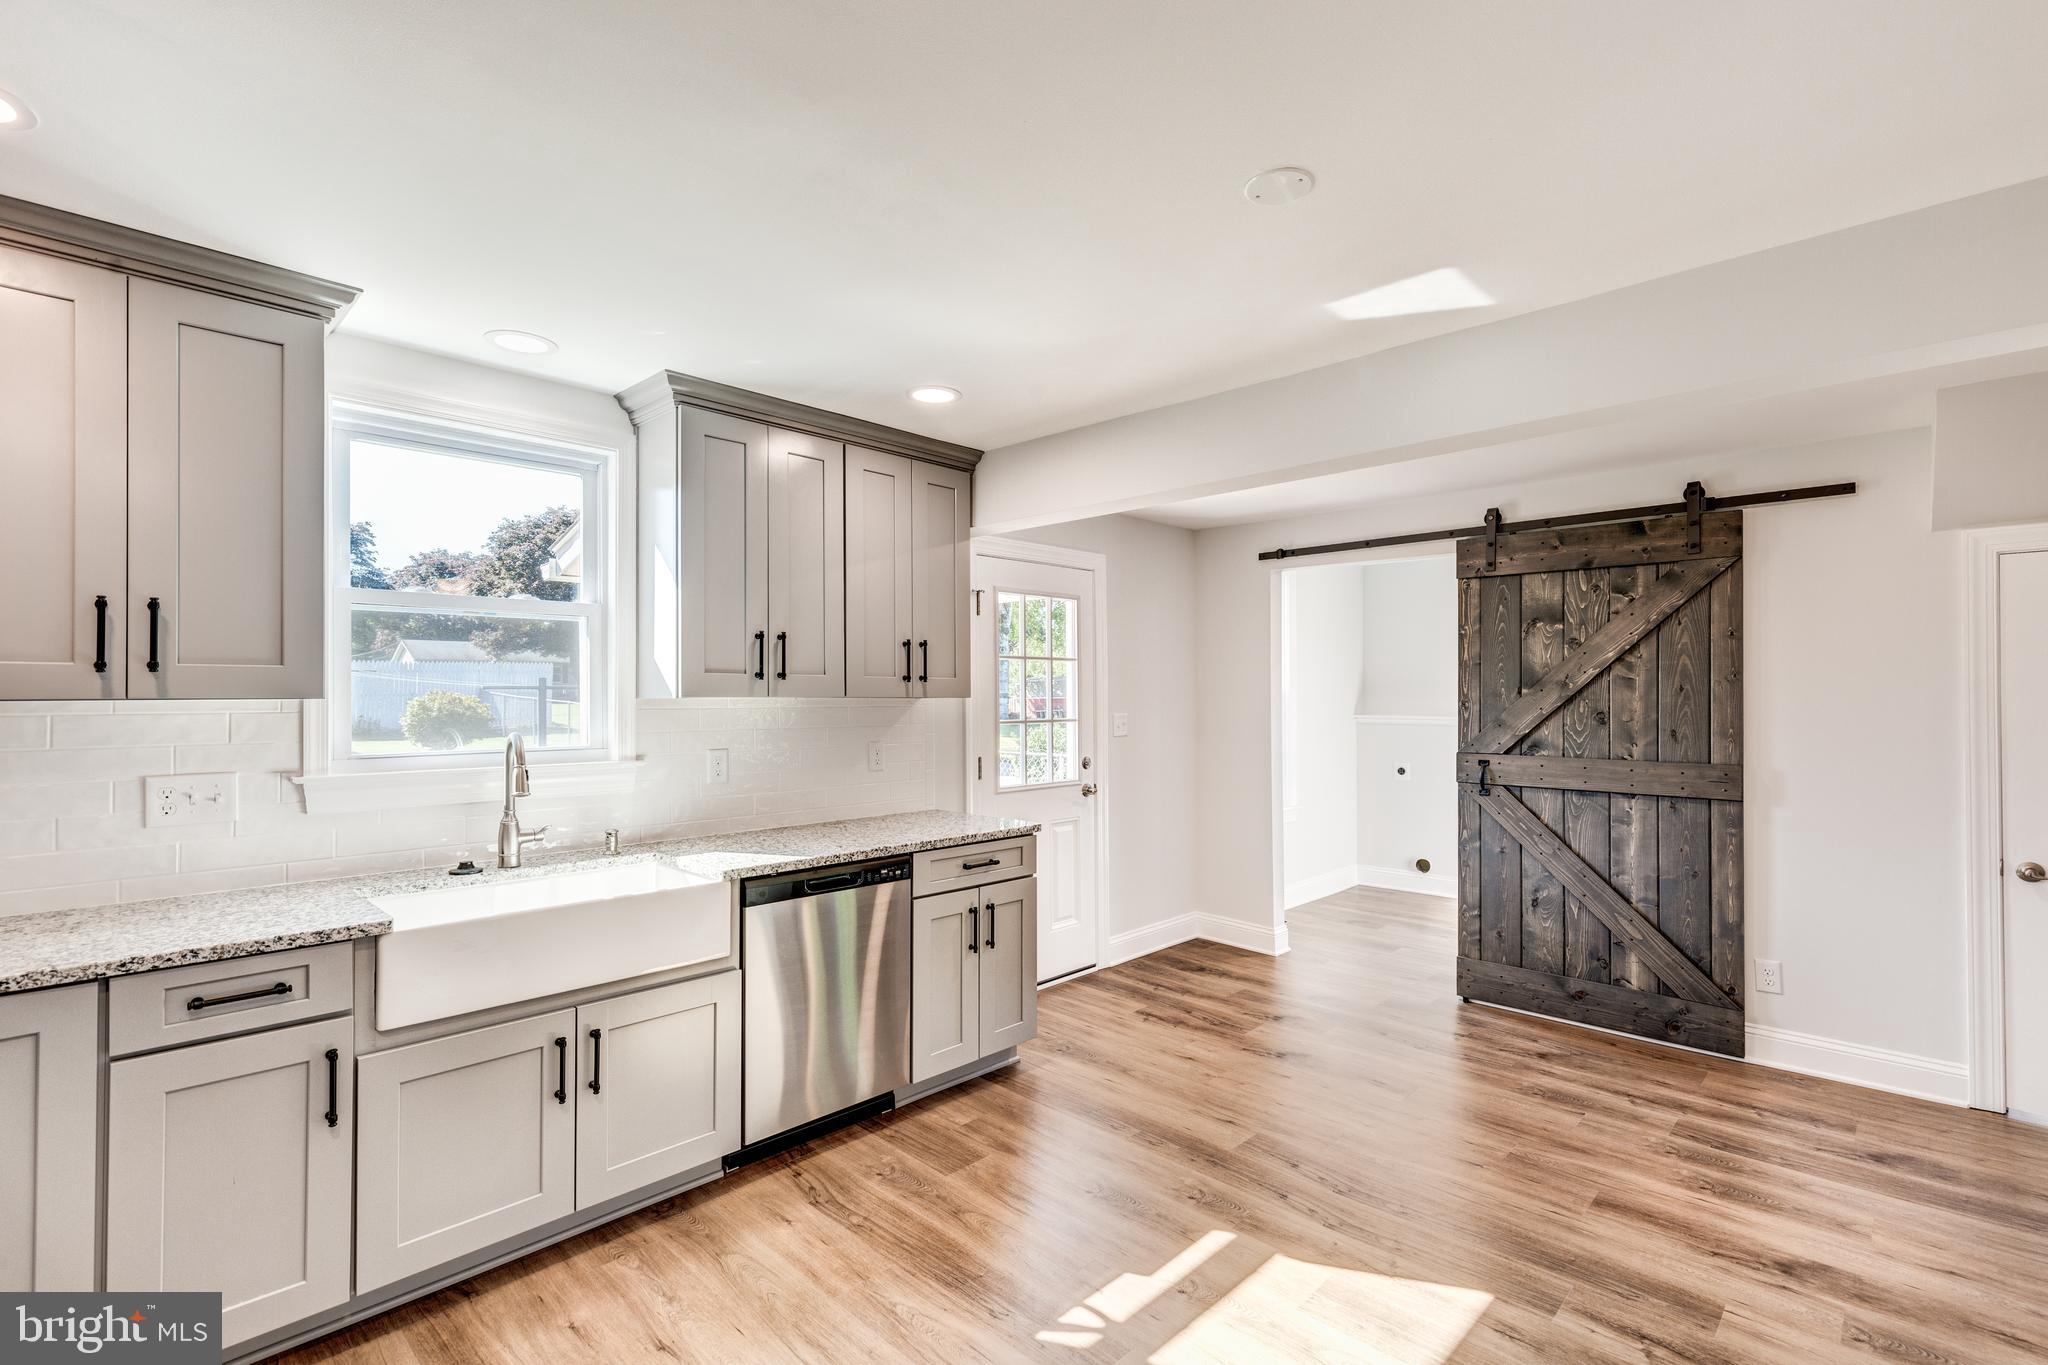 This cutie-patootie is now ready for new new owners! Fully renovated from brand new kitchen, tile ba